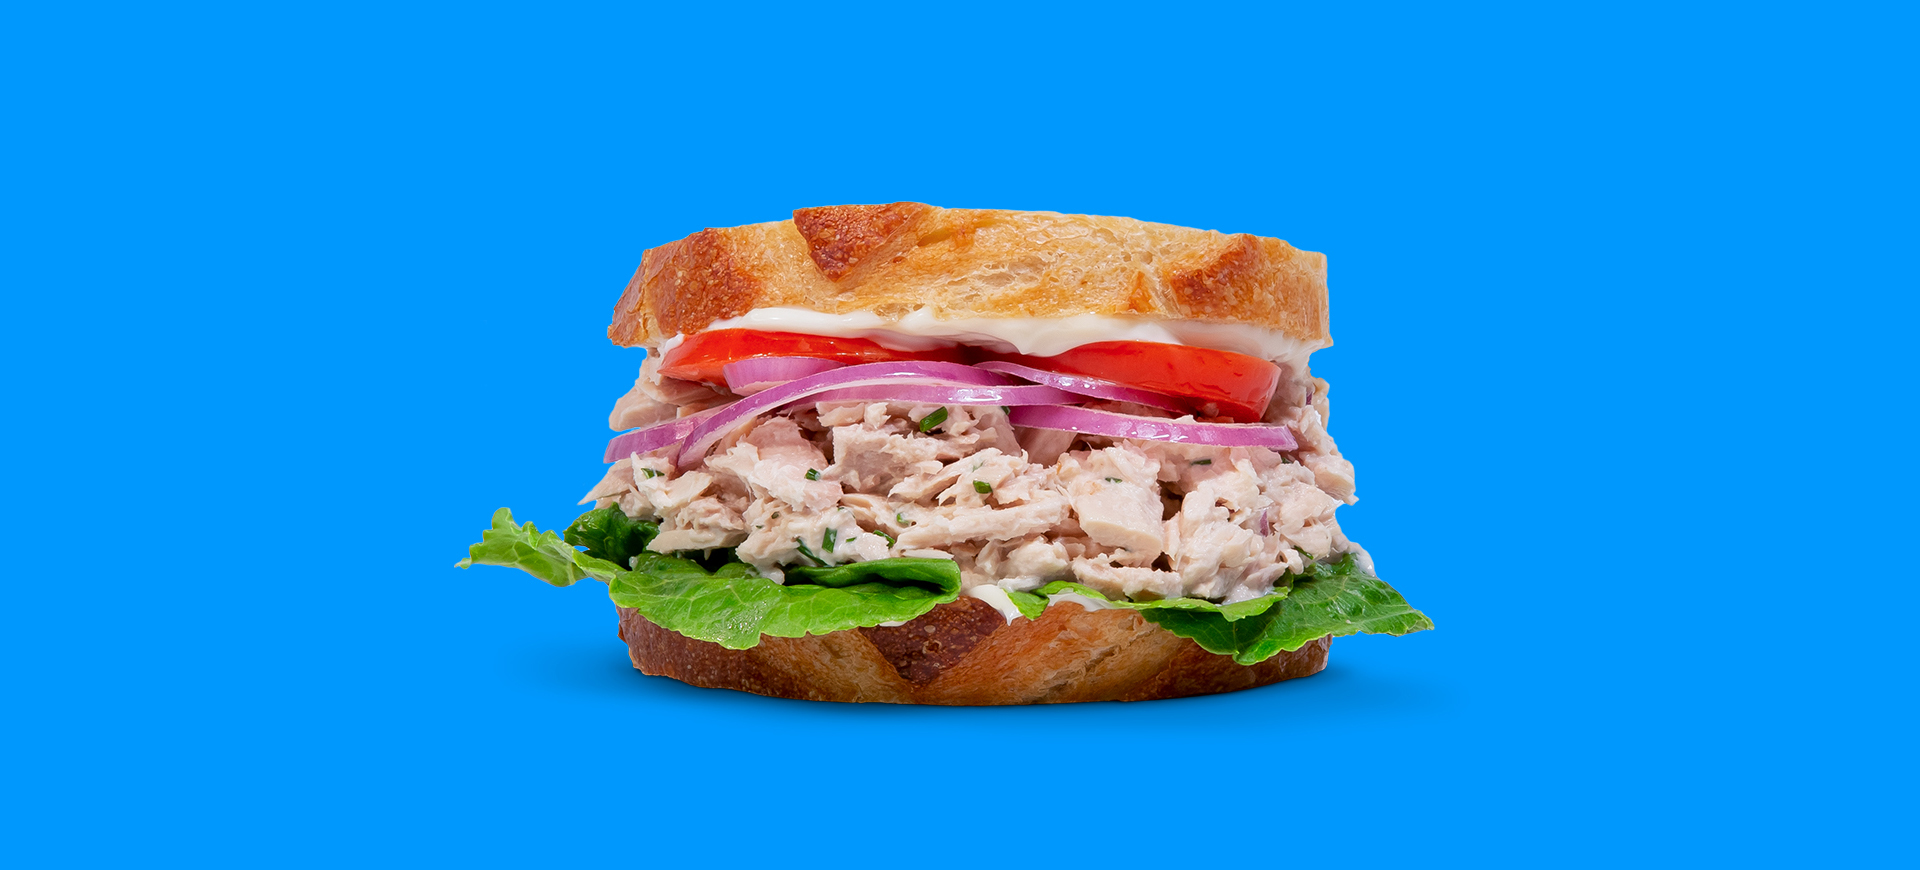 How Do You Do Tuna Sandwiches?